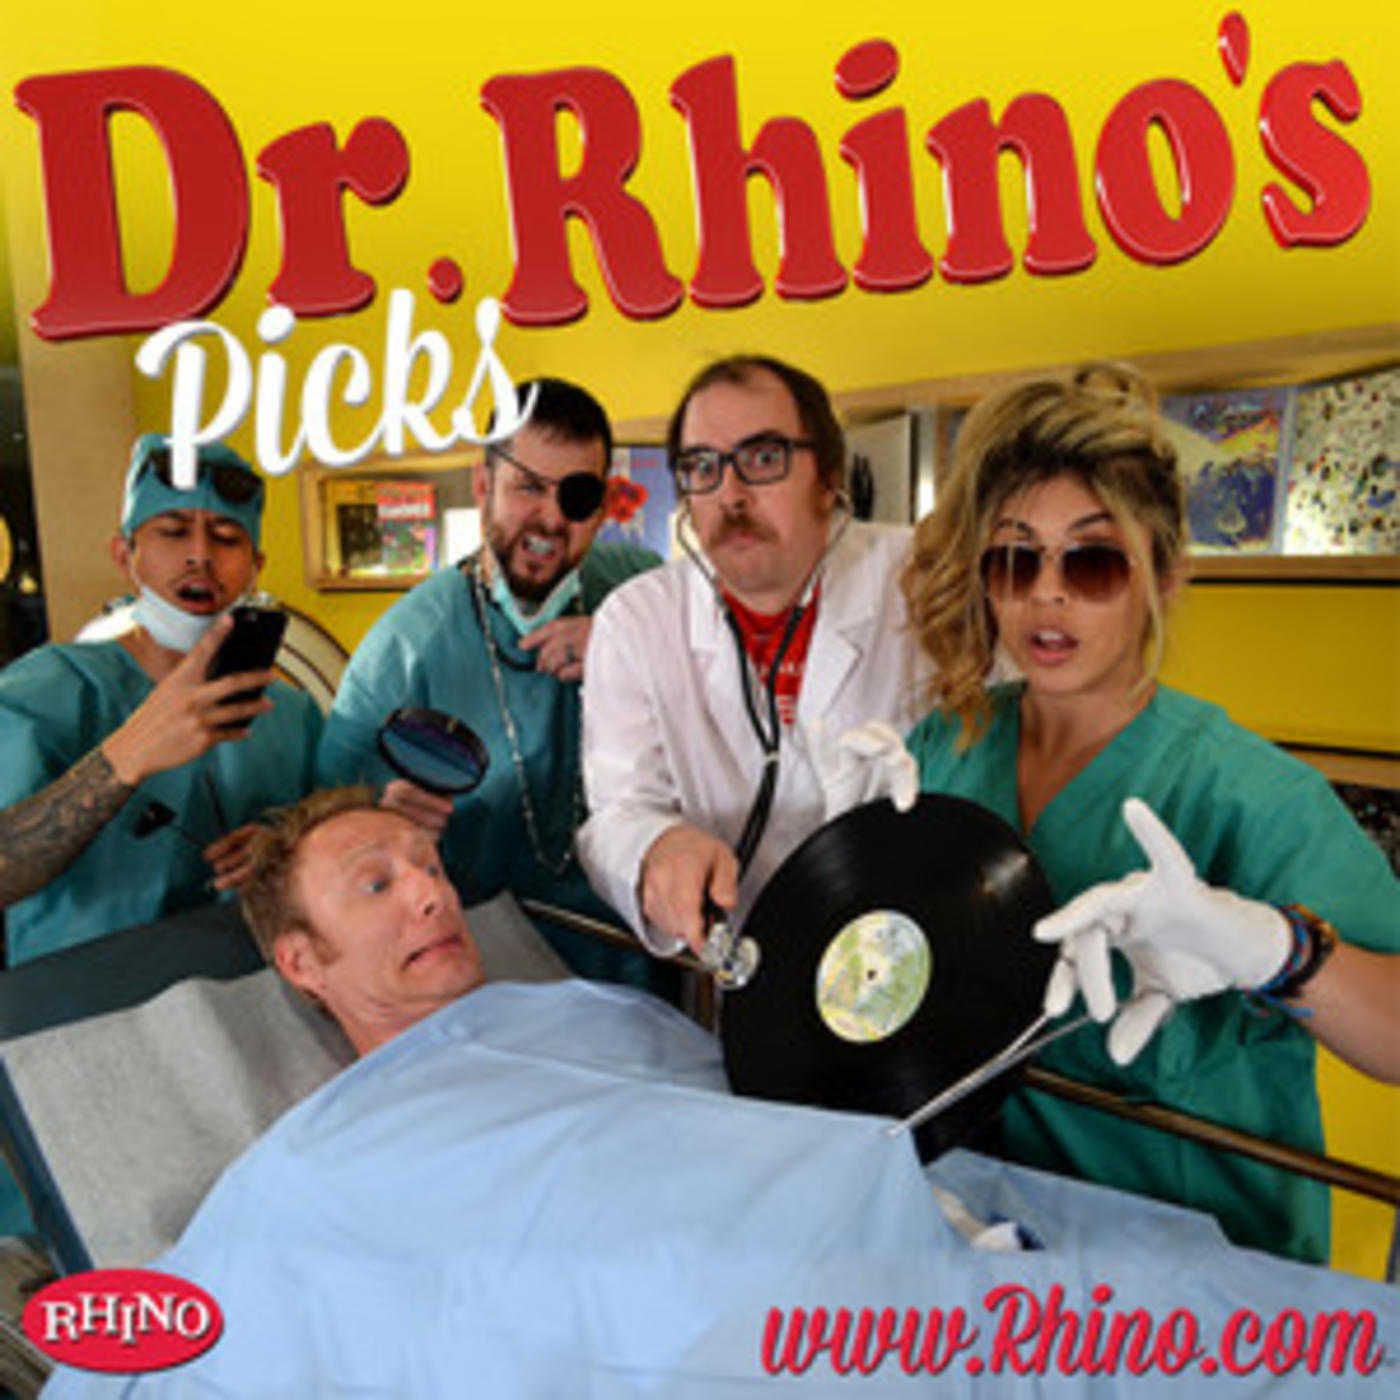 Dr. Rhino's Picks #186